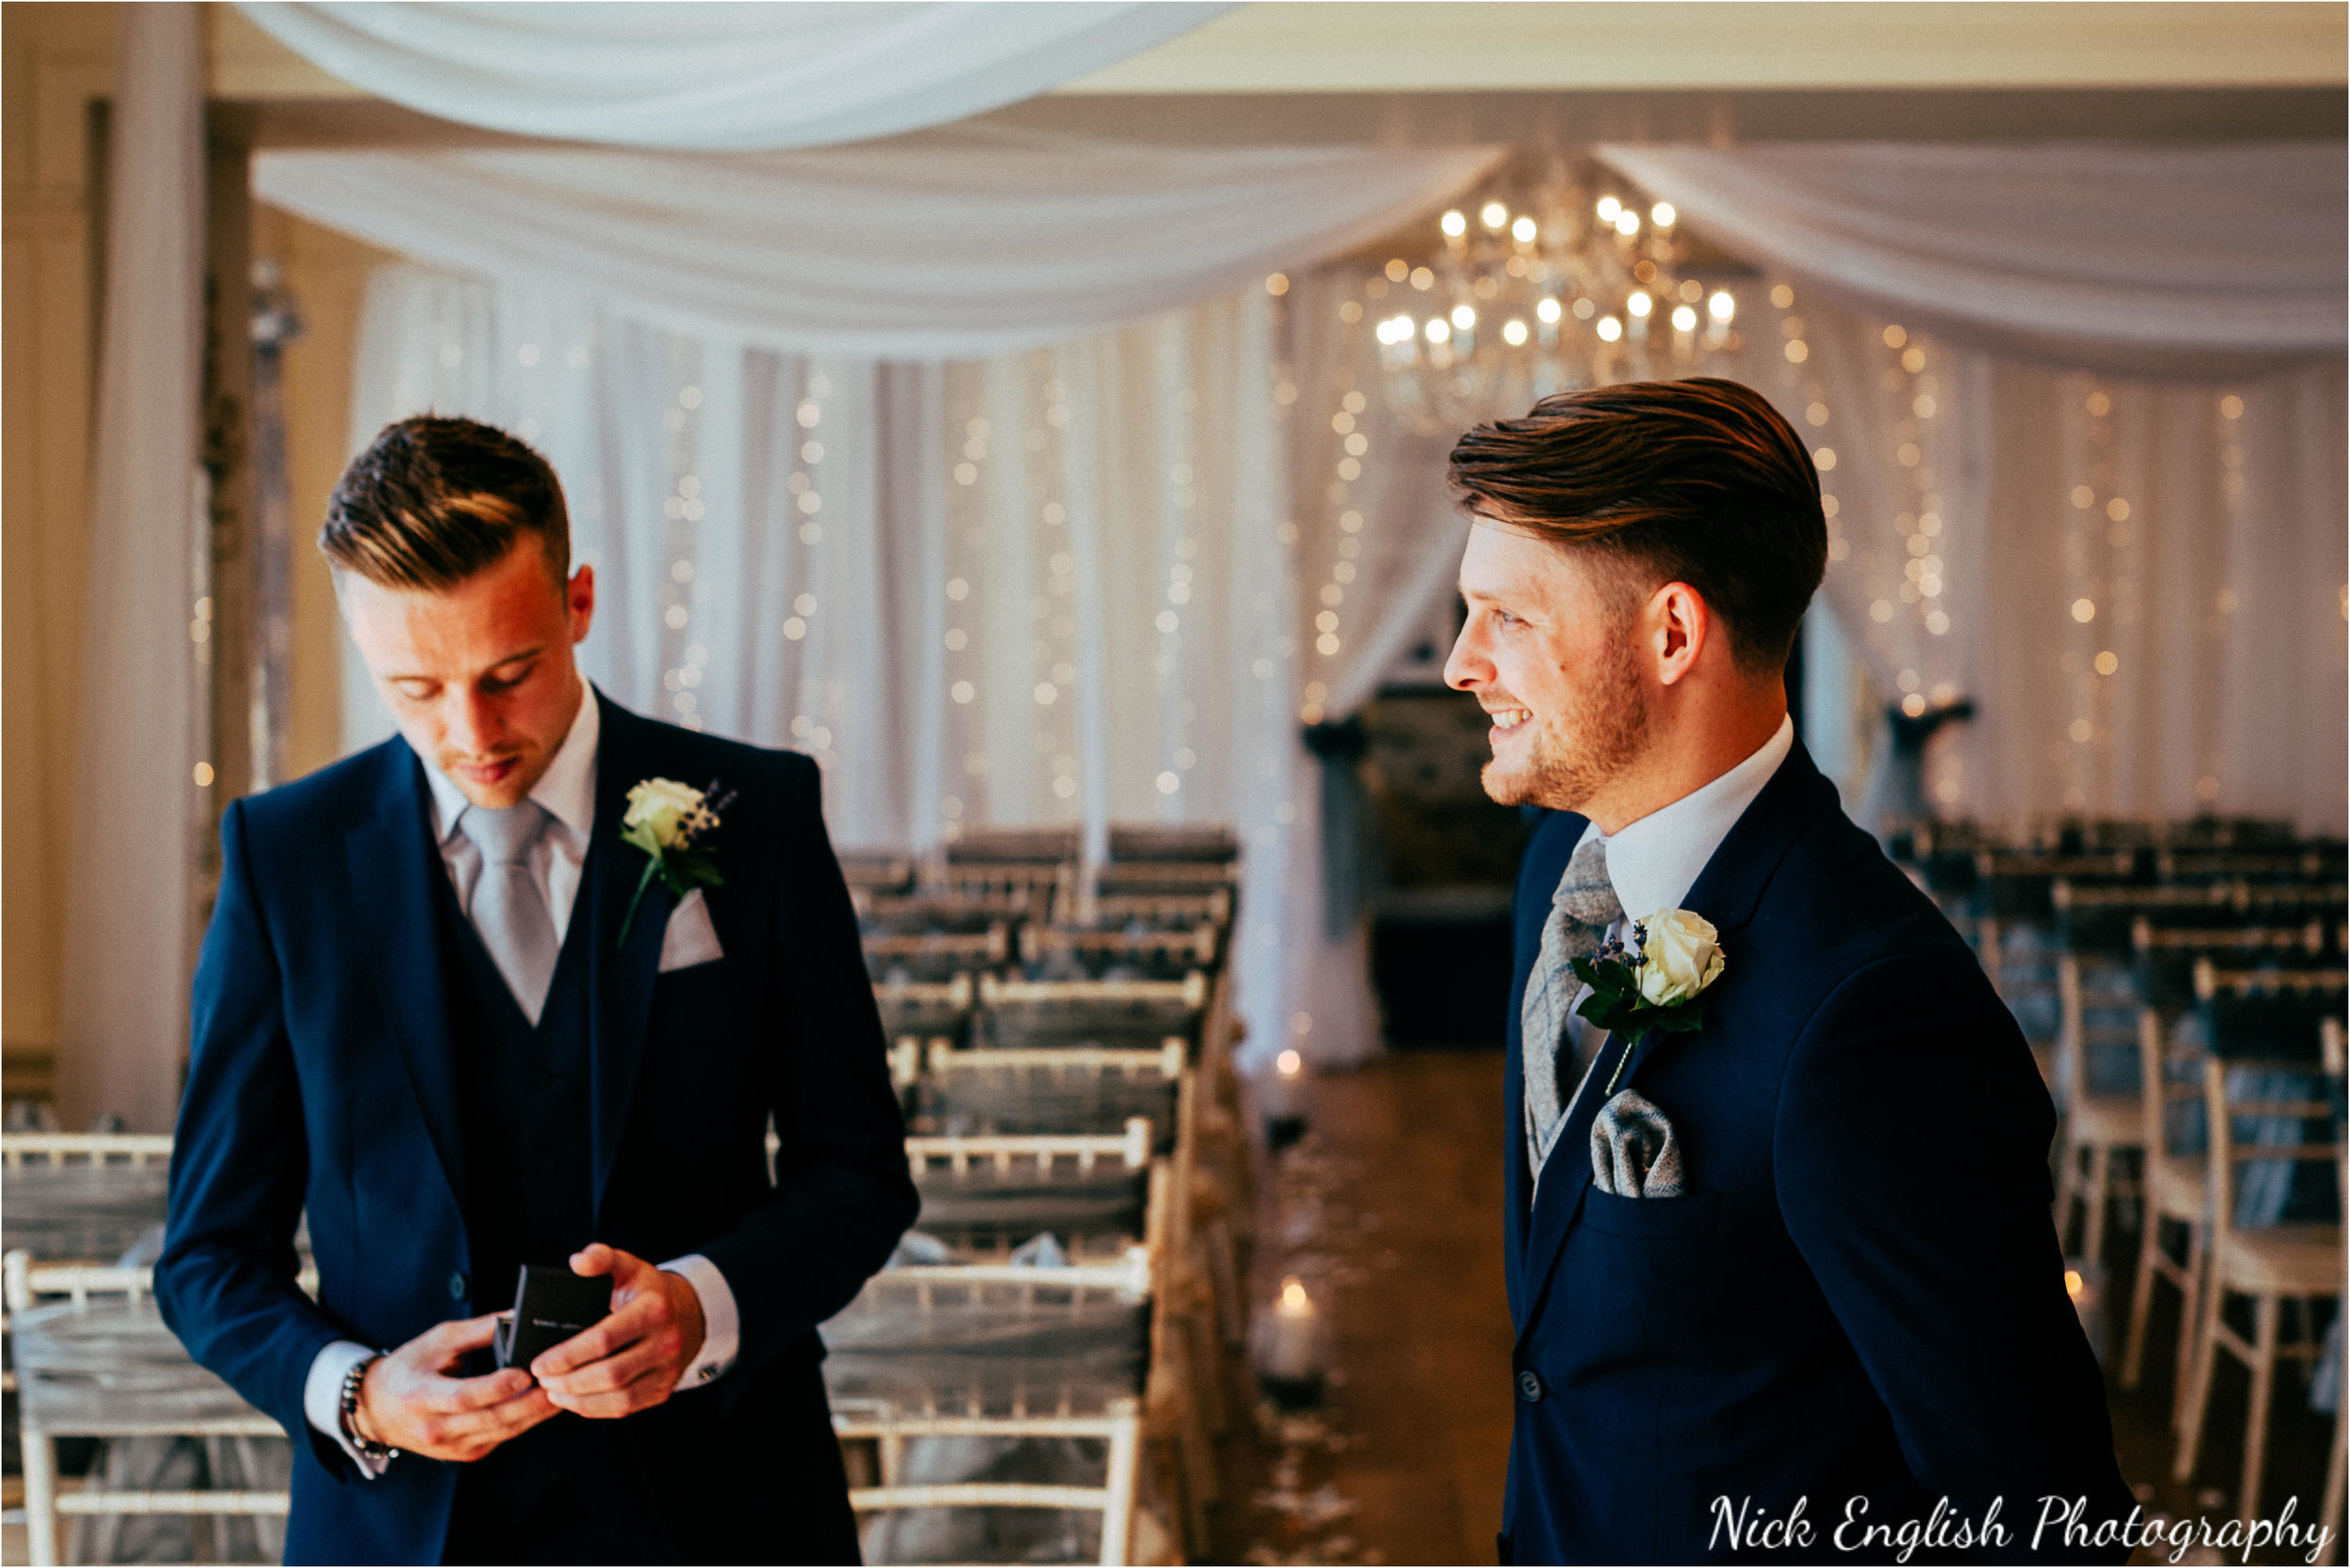 Eaves_Hall_Wedding_Photographs_Nick_English_Photography-85.jpg